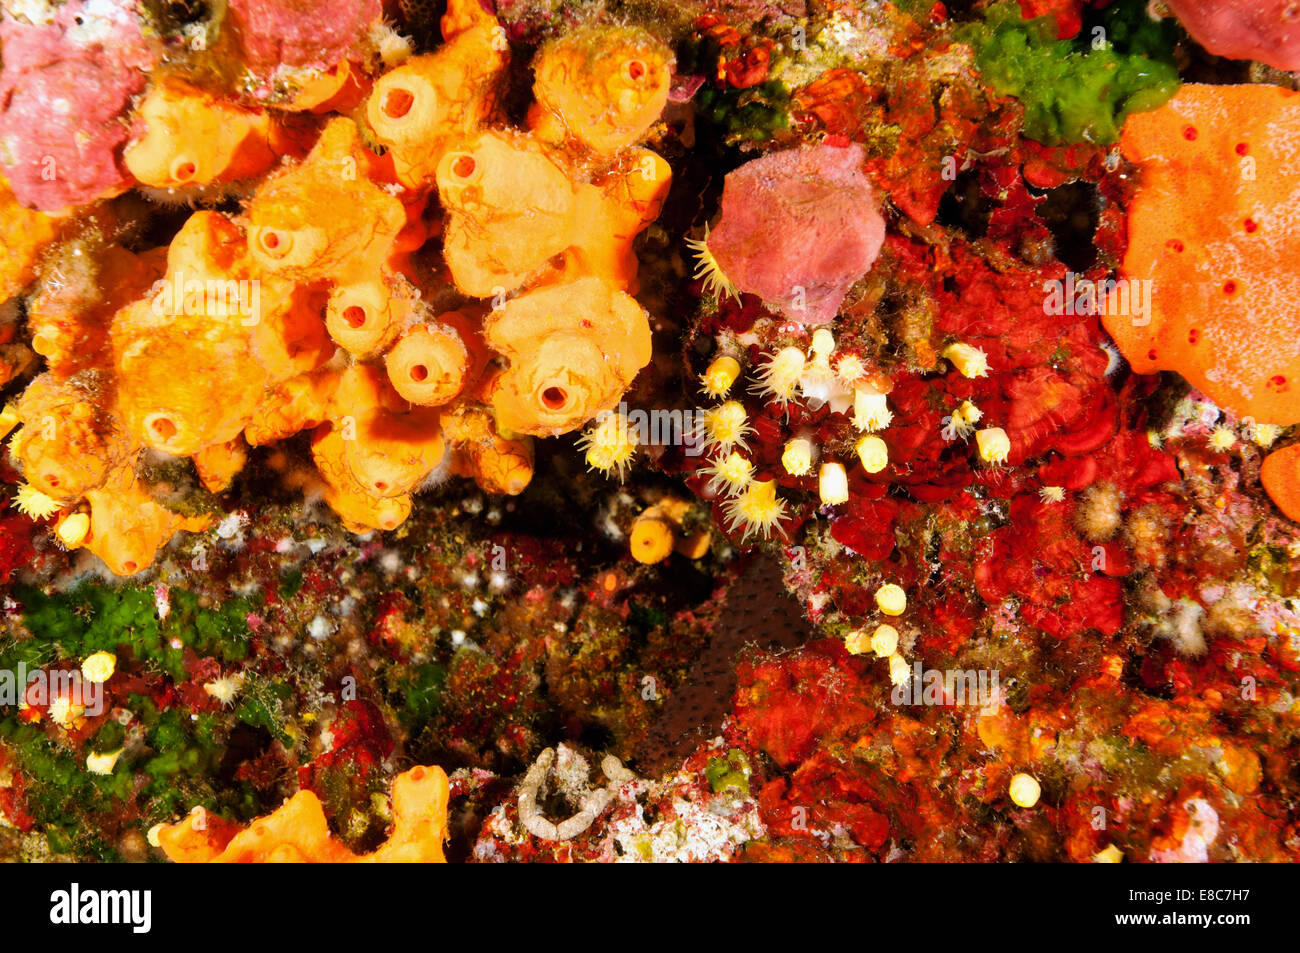 Reef scenic with sponges and cup corals Leros Island Dodecanese Greece - Stock Image